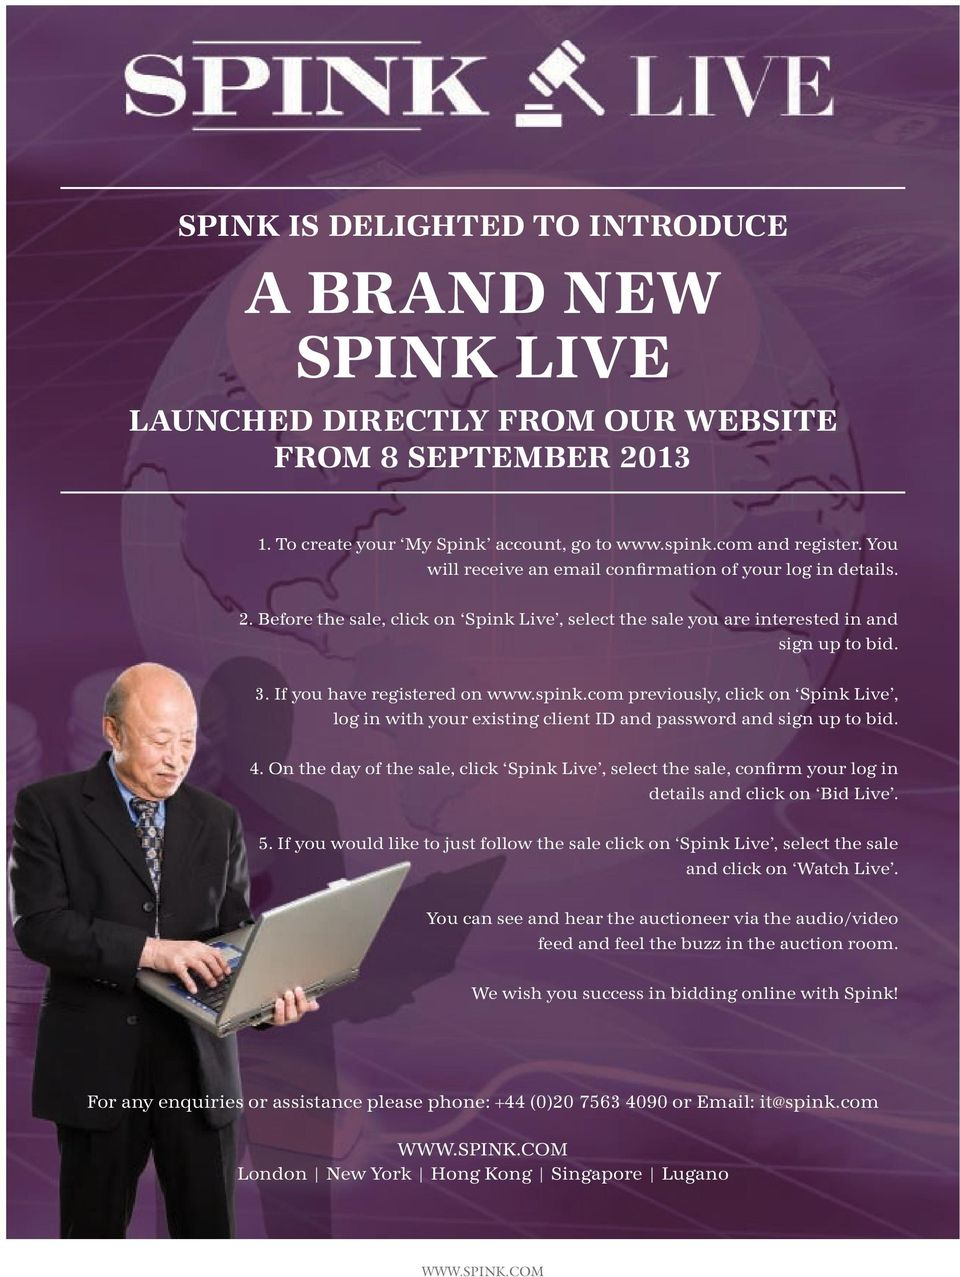 spink.com previously, click on Spink Live, log in with your existing client ID and password and sign up to bid. 4.